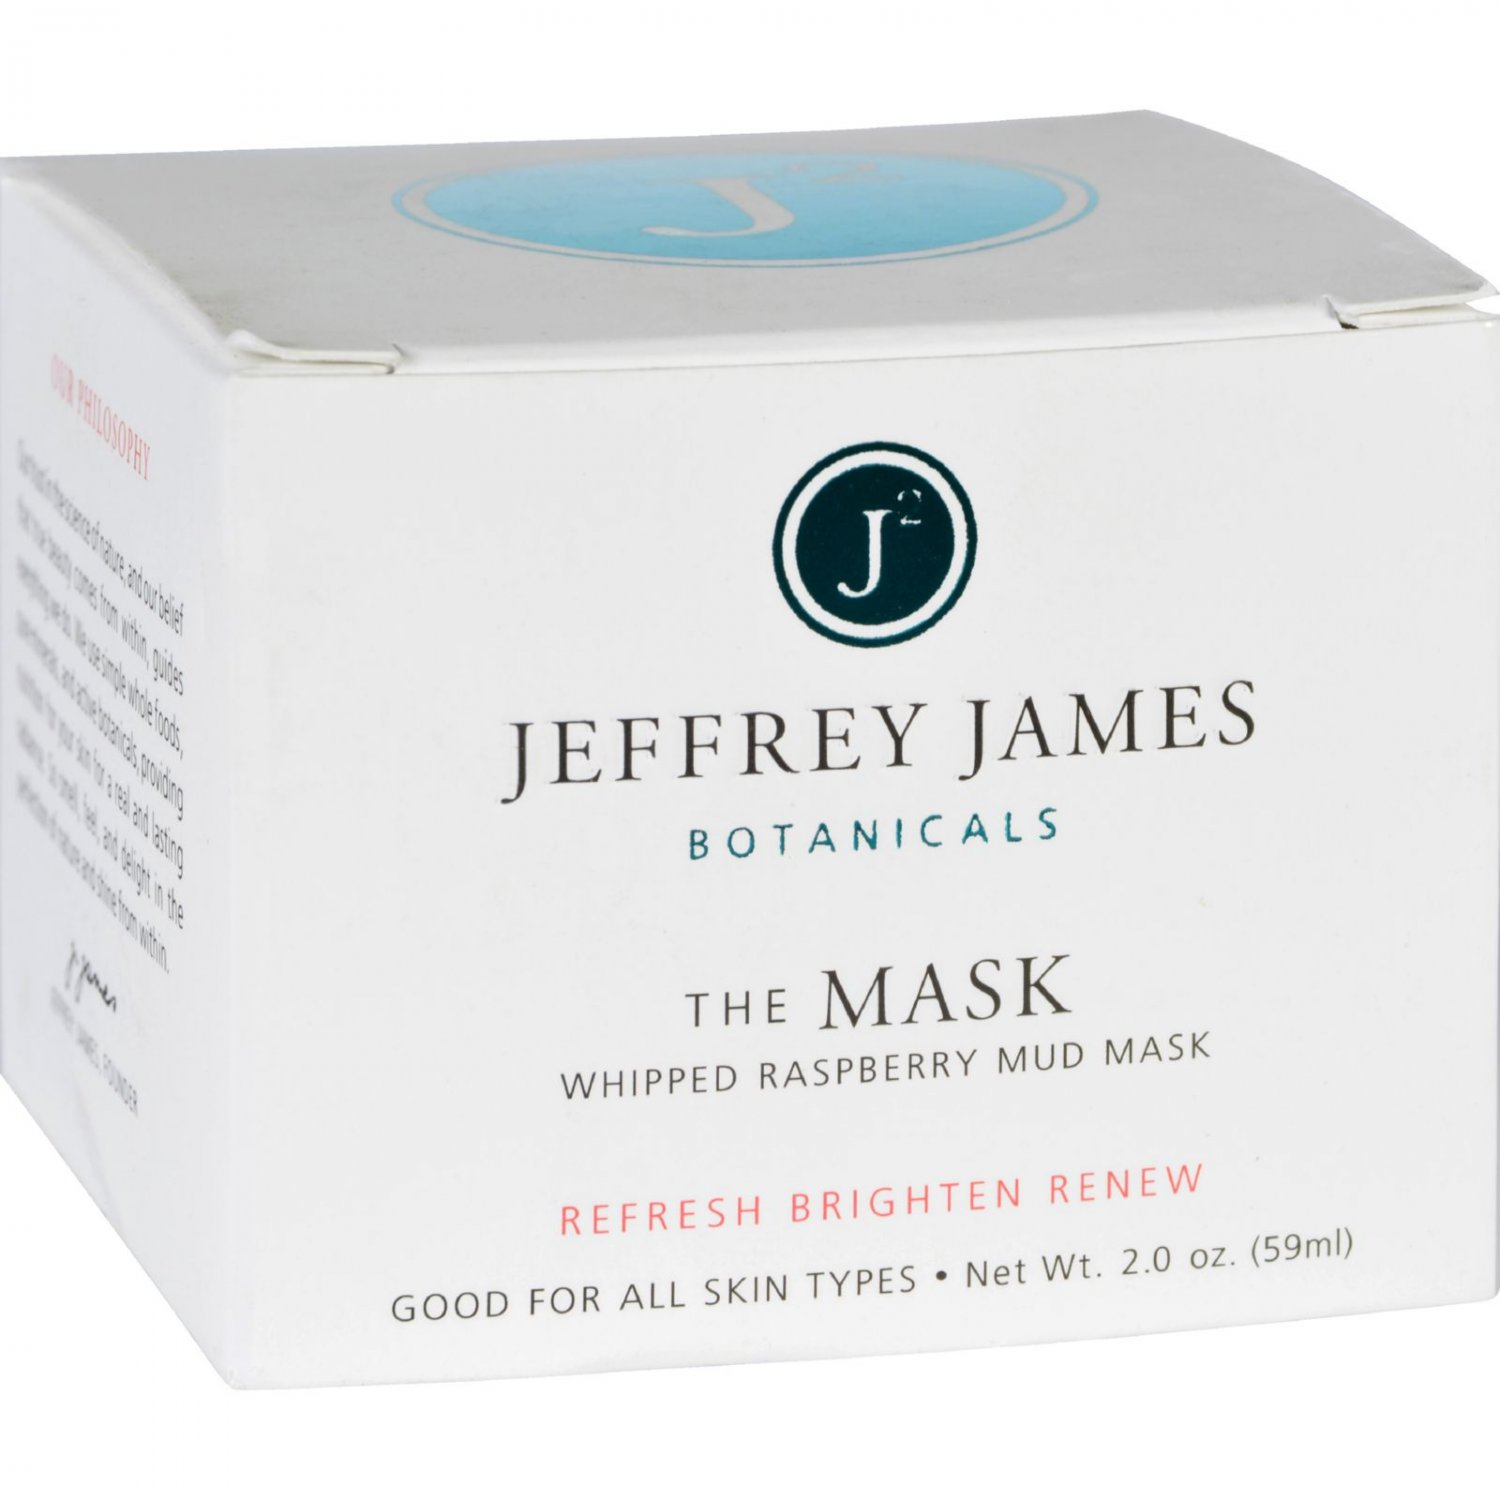 Jeffrey James Botanicals Facial Mask - The Mask - Whipped Raspberry Mud - 2 oz